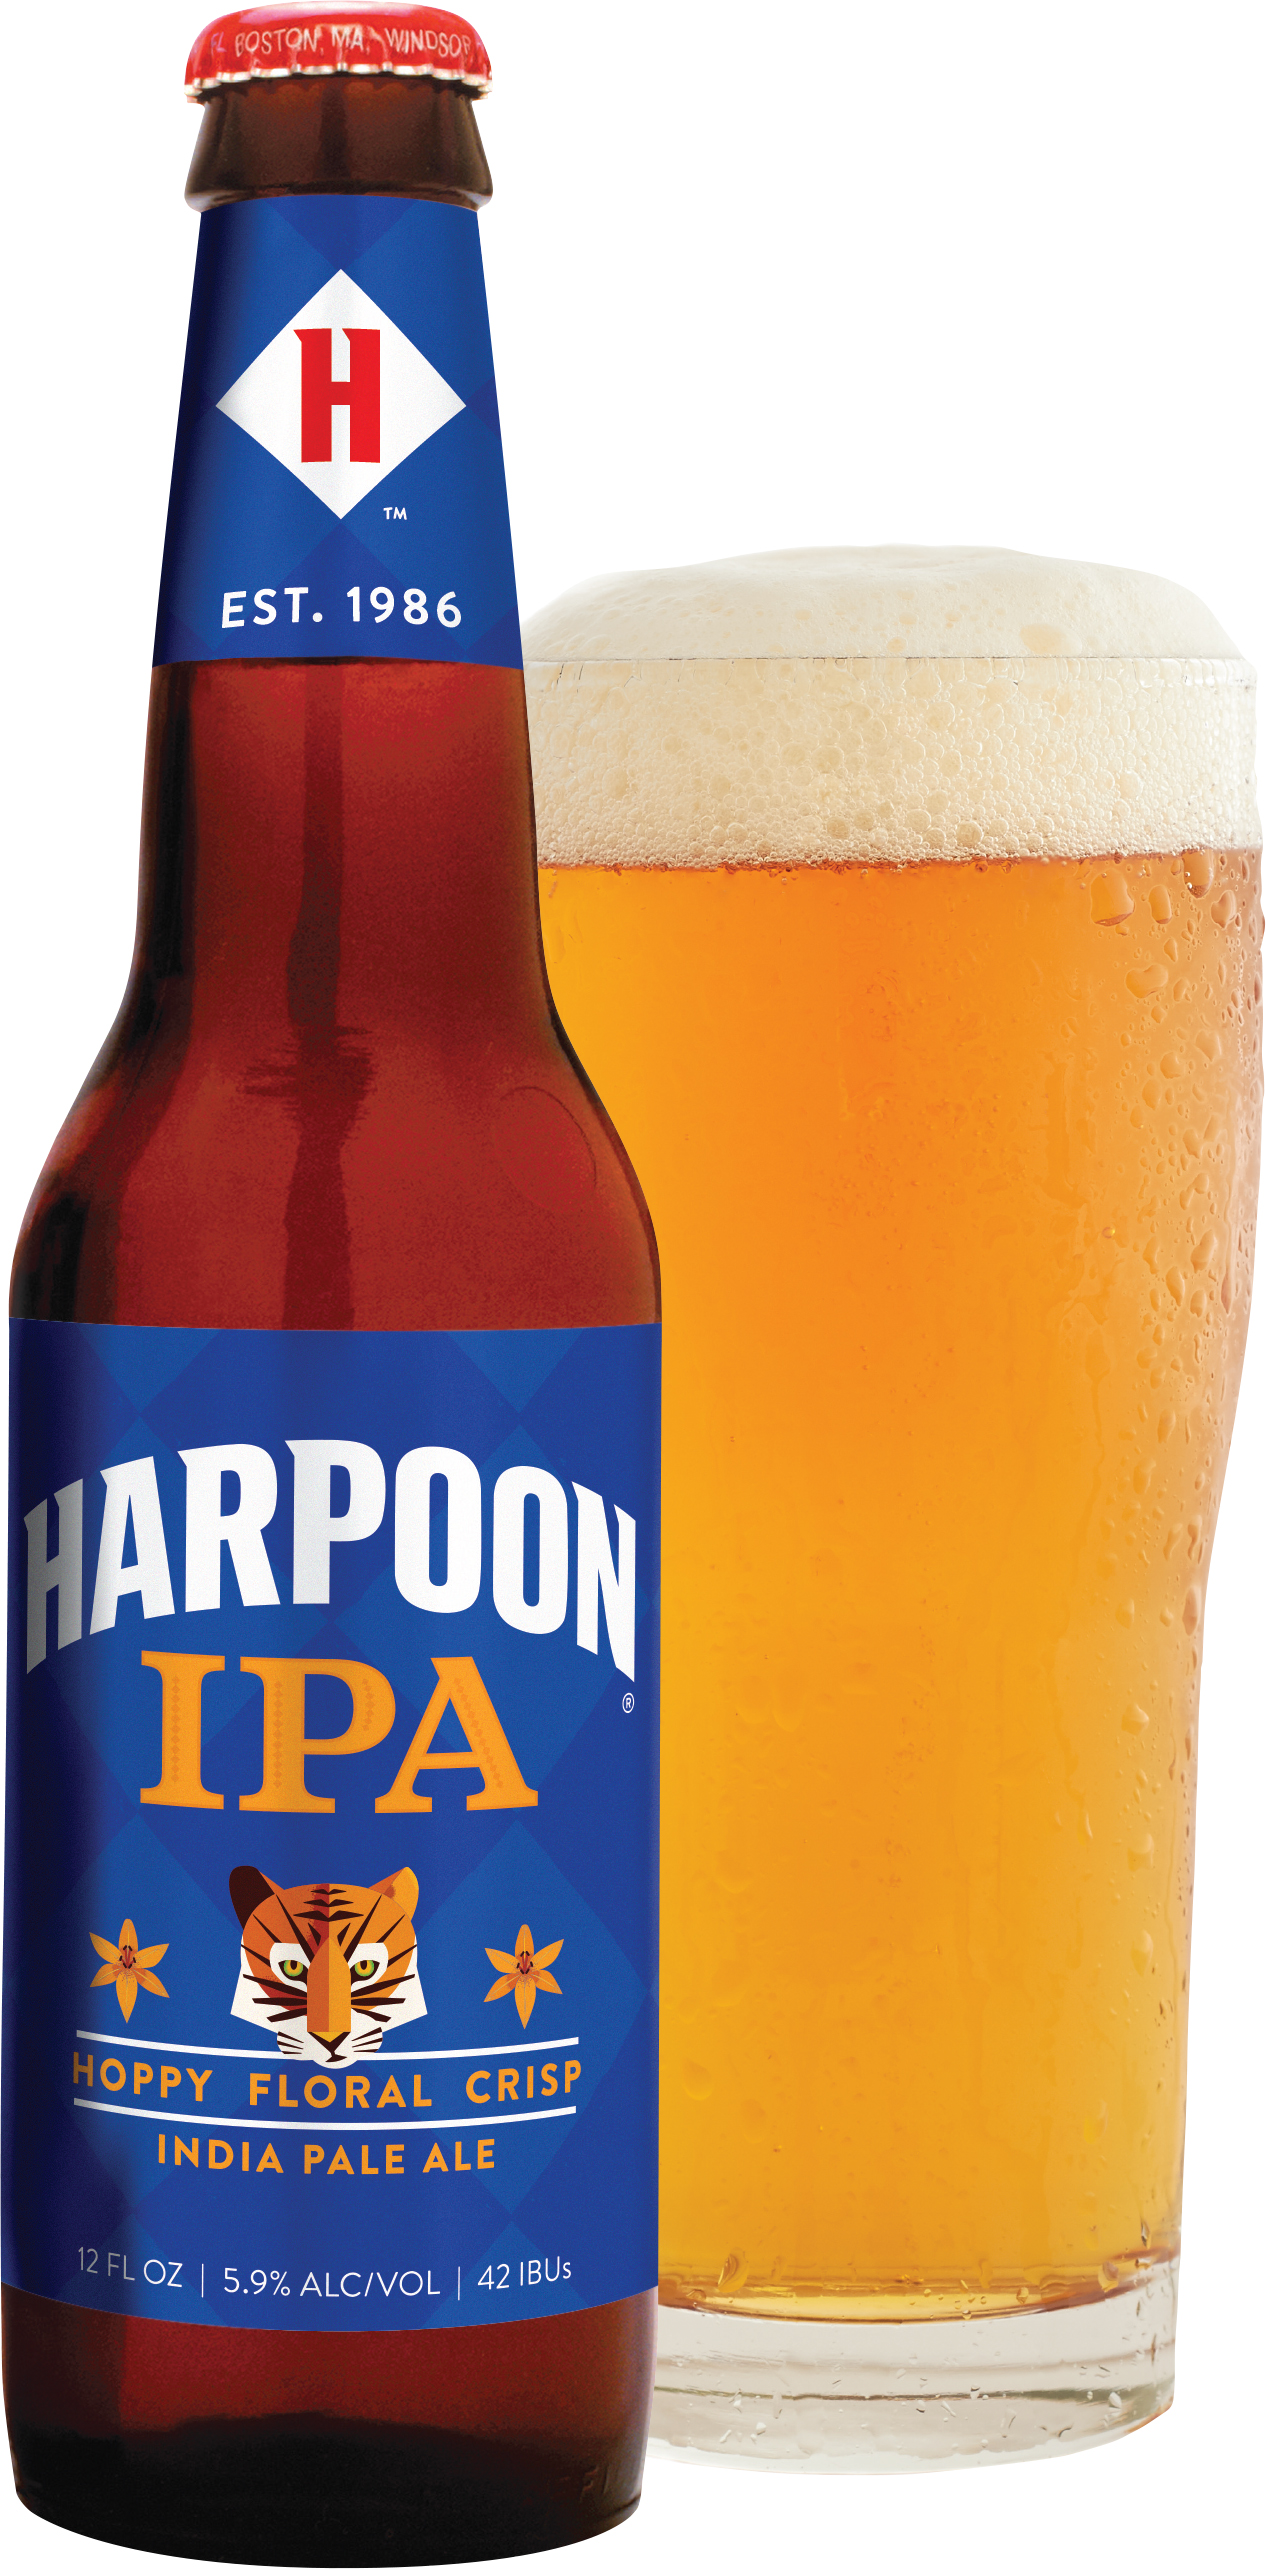 NEW-Harpoon-IPA-12oz-Bottle-And-Glass